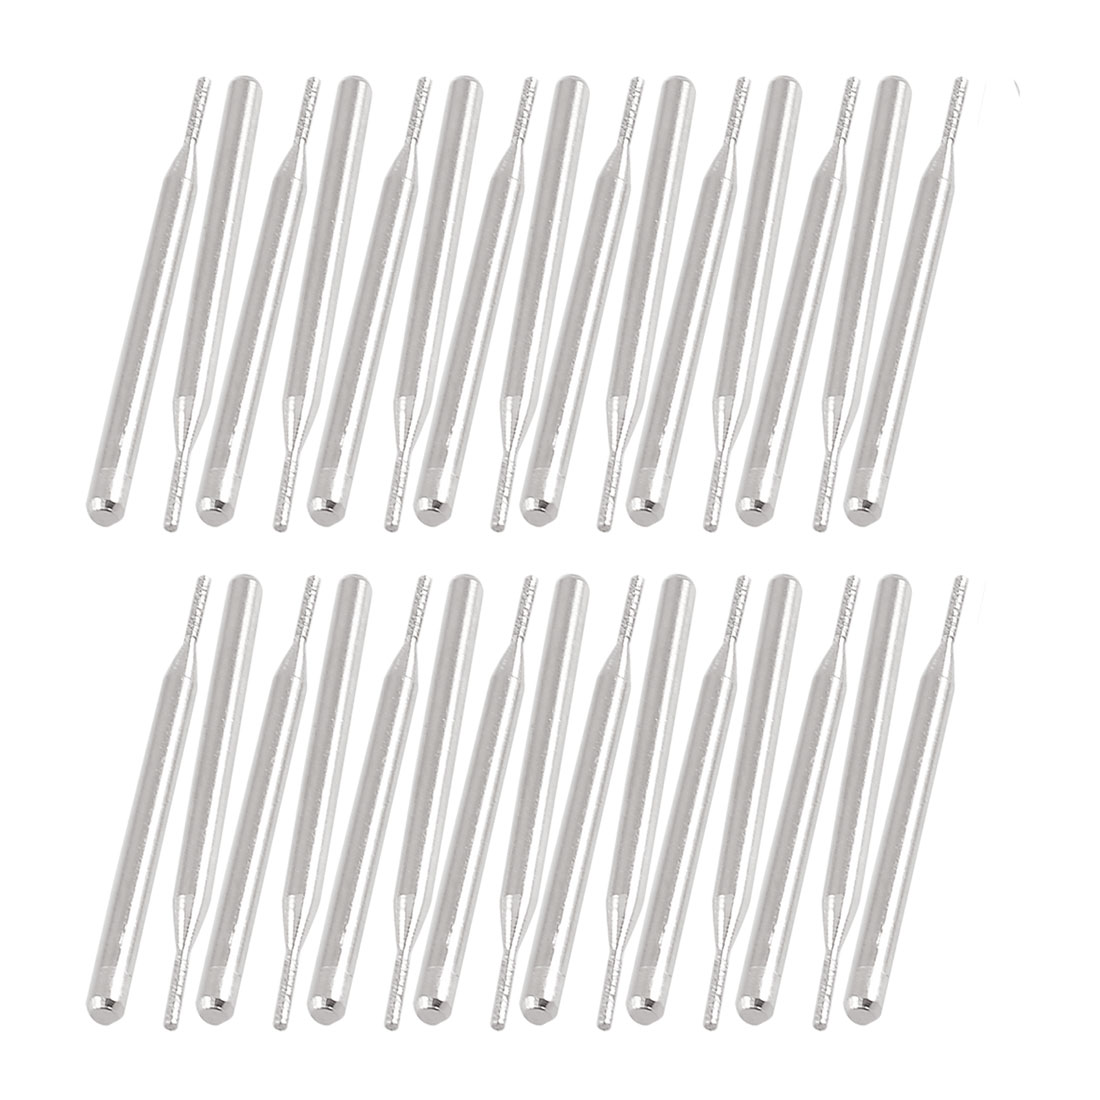 30 Pcs 1.1mm Cylindrical Head 3mm Shank Alloy Diamond Mounted Point Grinding Tool